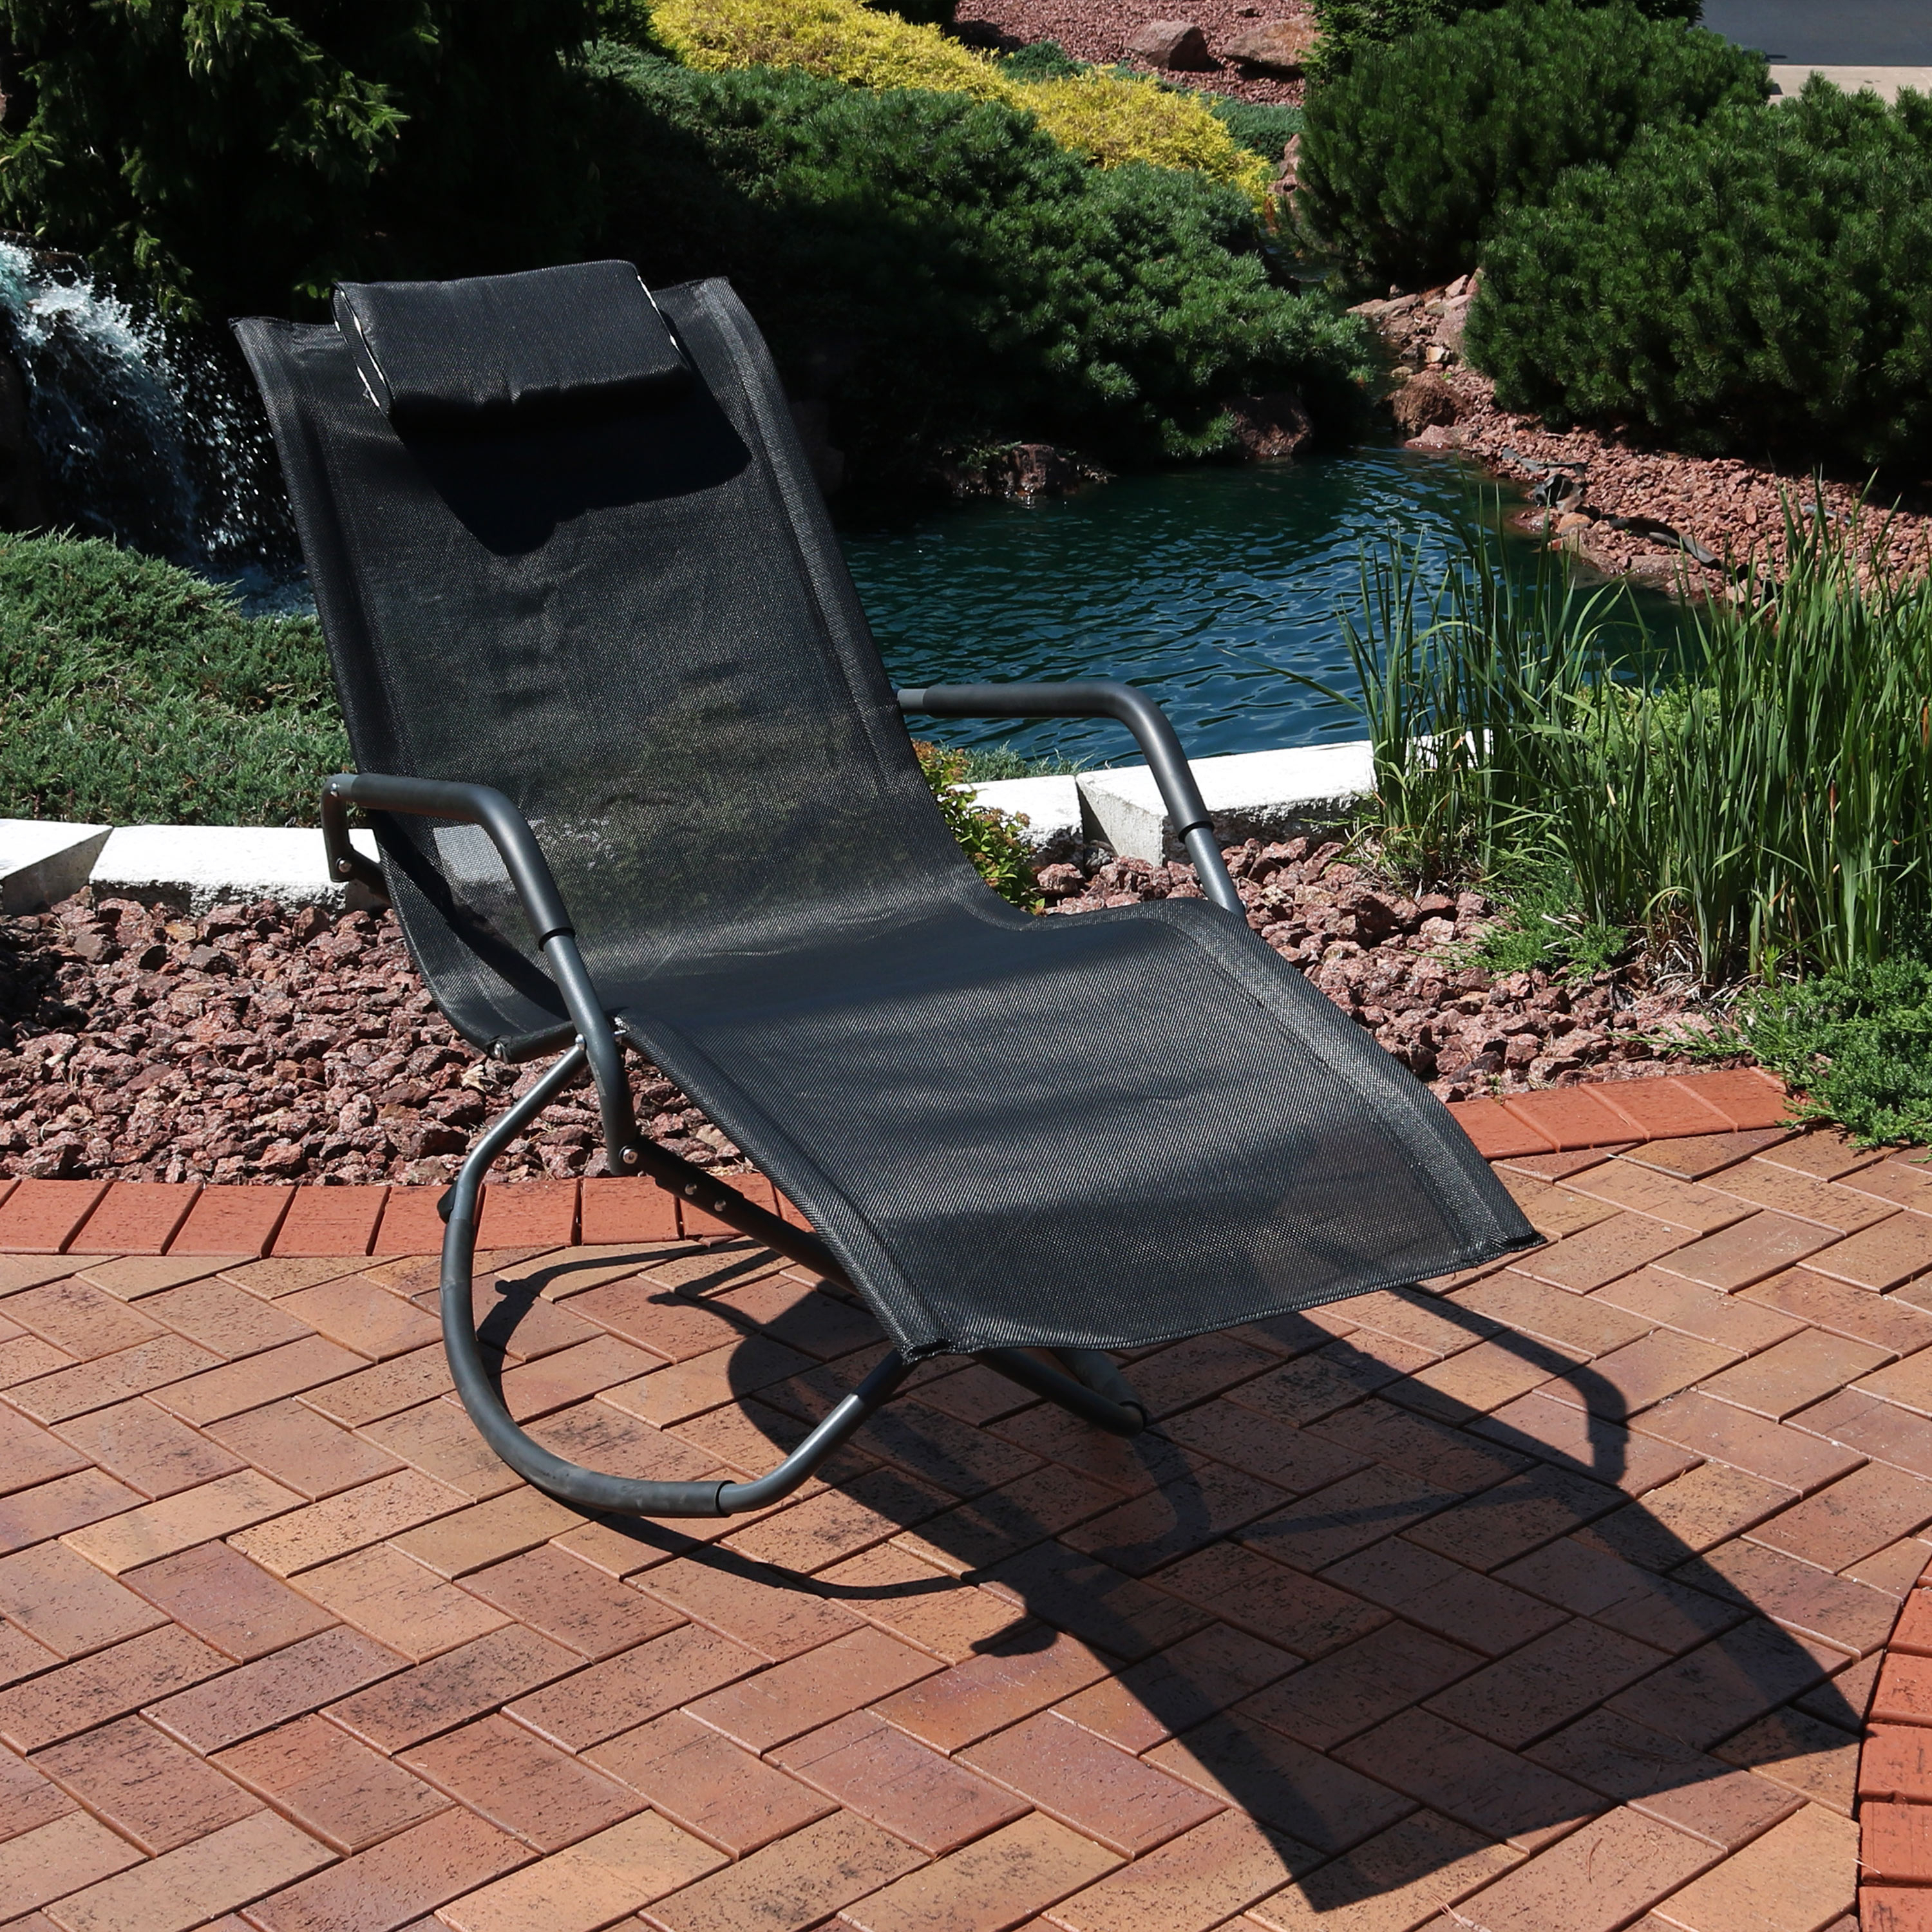 Steel Sling Fabric Outdoor Folding Chaise Lounges Pertaining To Newest Sunnydaze Rocking Chaise Lounge Chair With Headrest Pillow, Outdoor Folding Patio Lounger, Black (View 23 of 25)